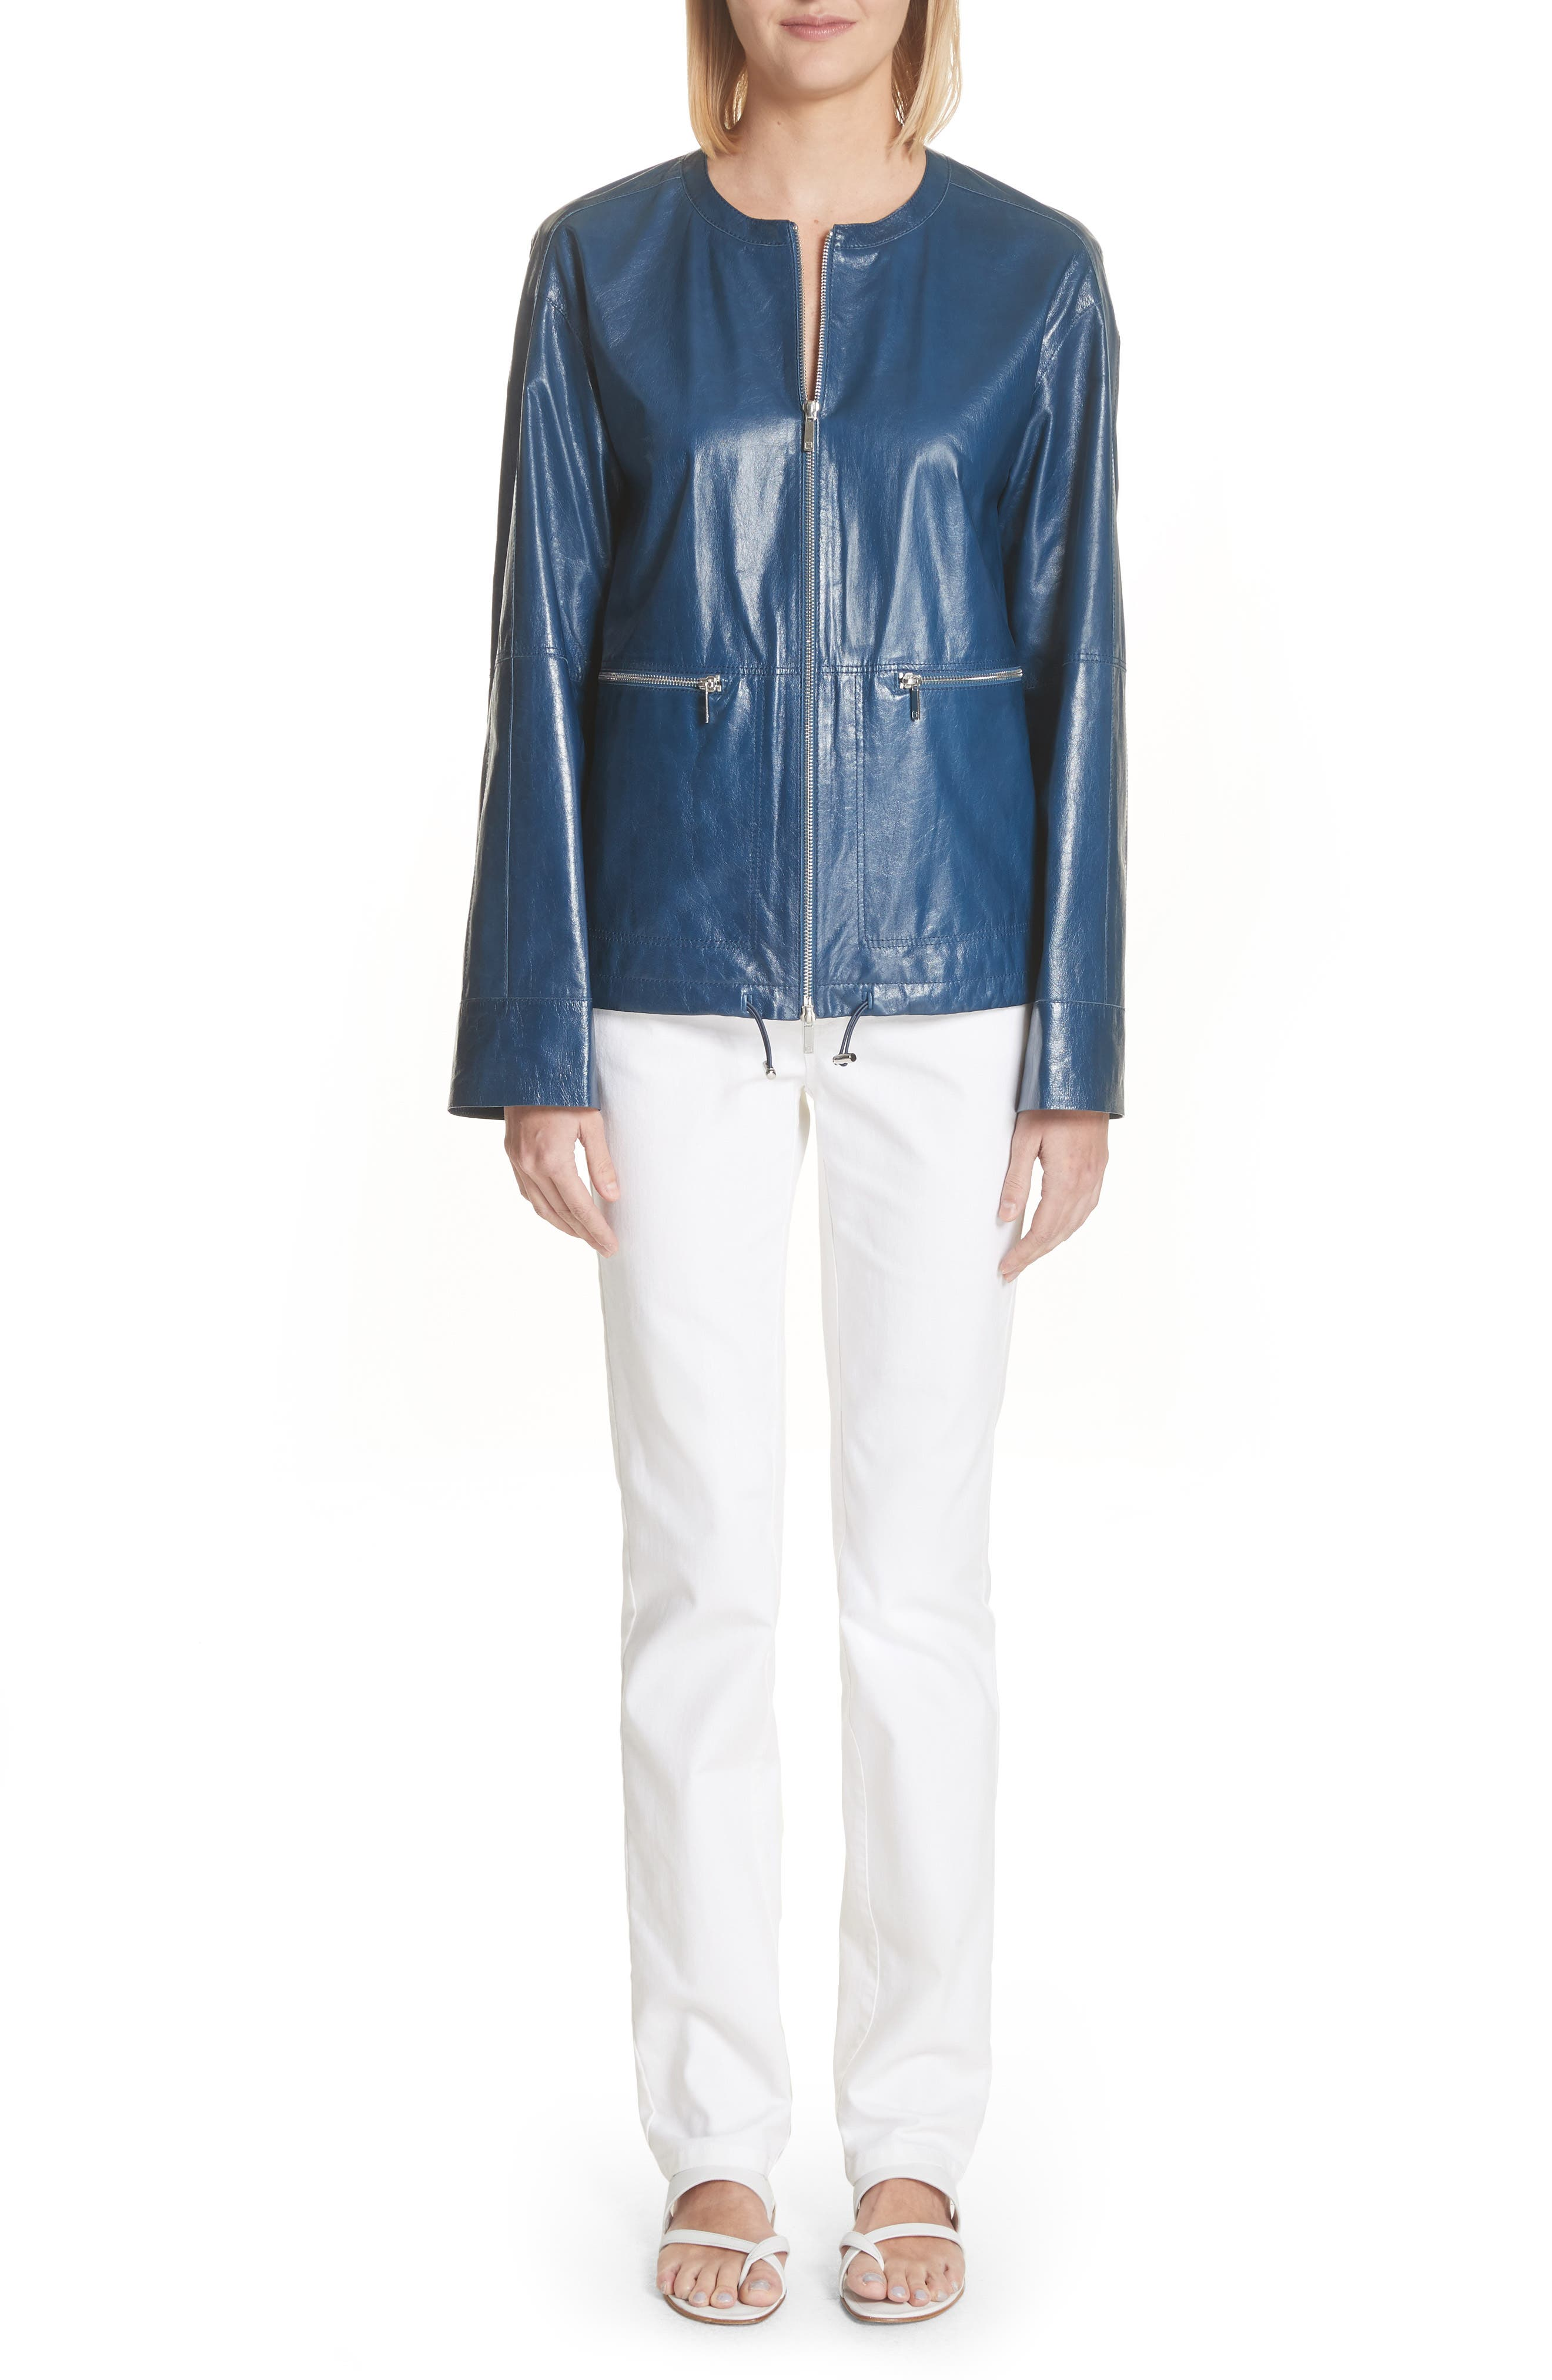 Fleming Leather Jacket,                             Alternate thumbnail 8, color,                             Majolica Blue